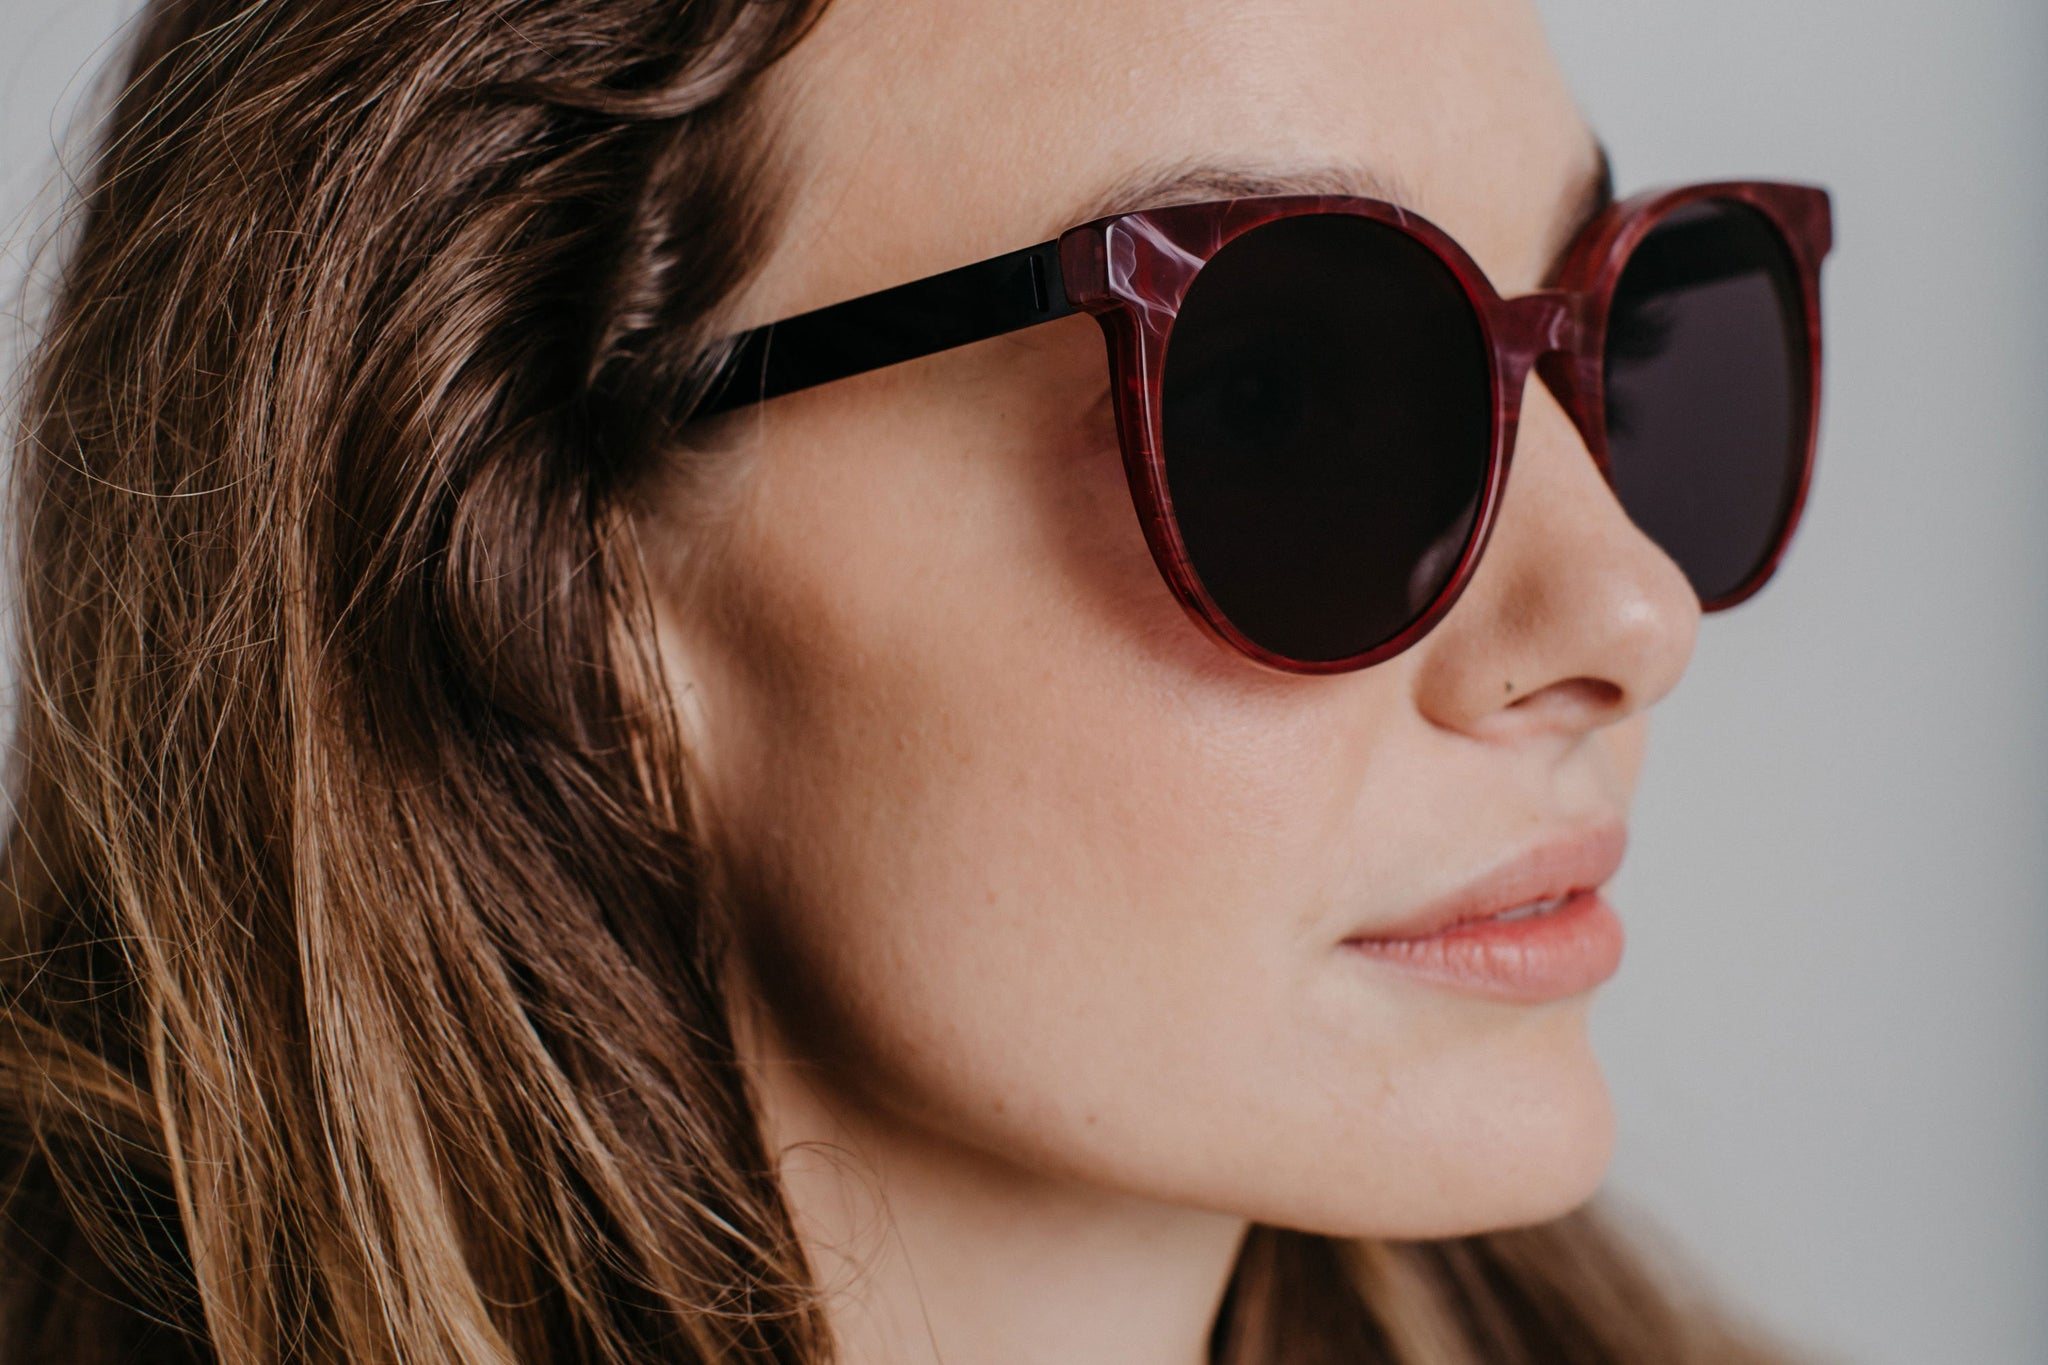 Juliette Sunglasses - Lesetta